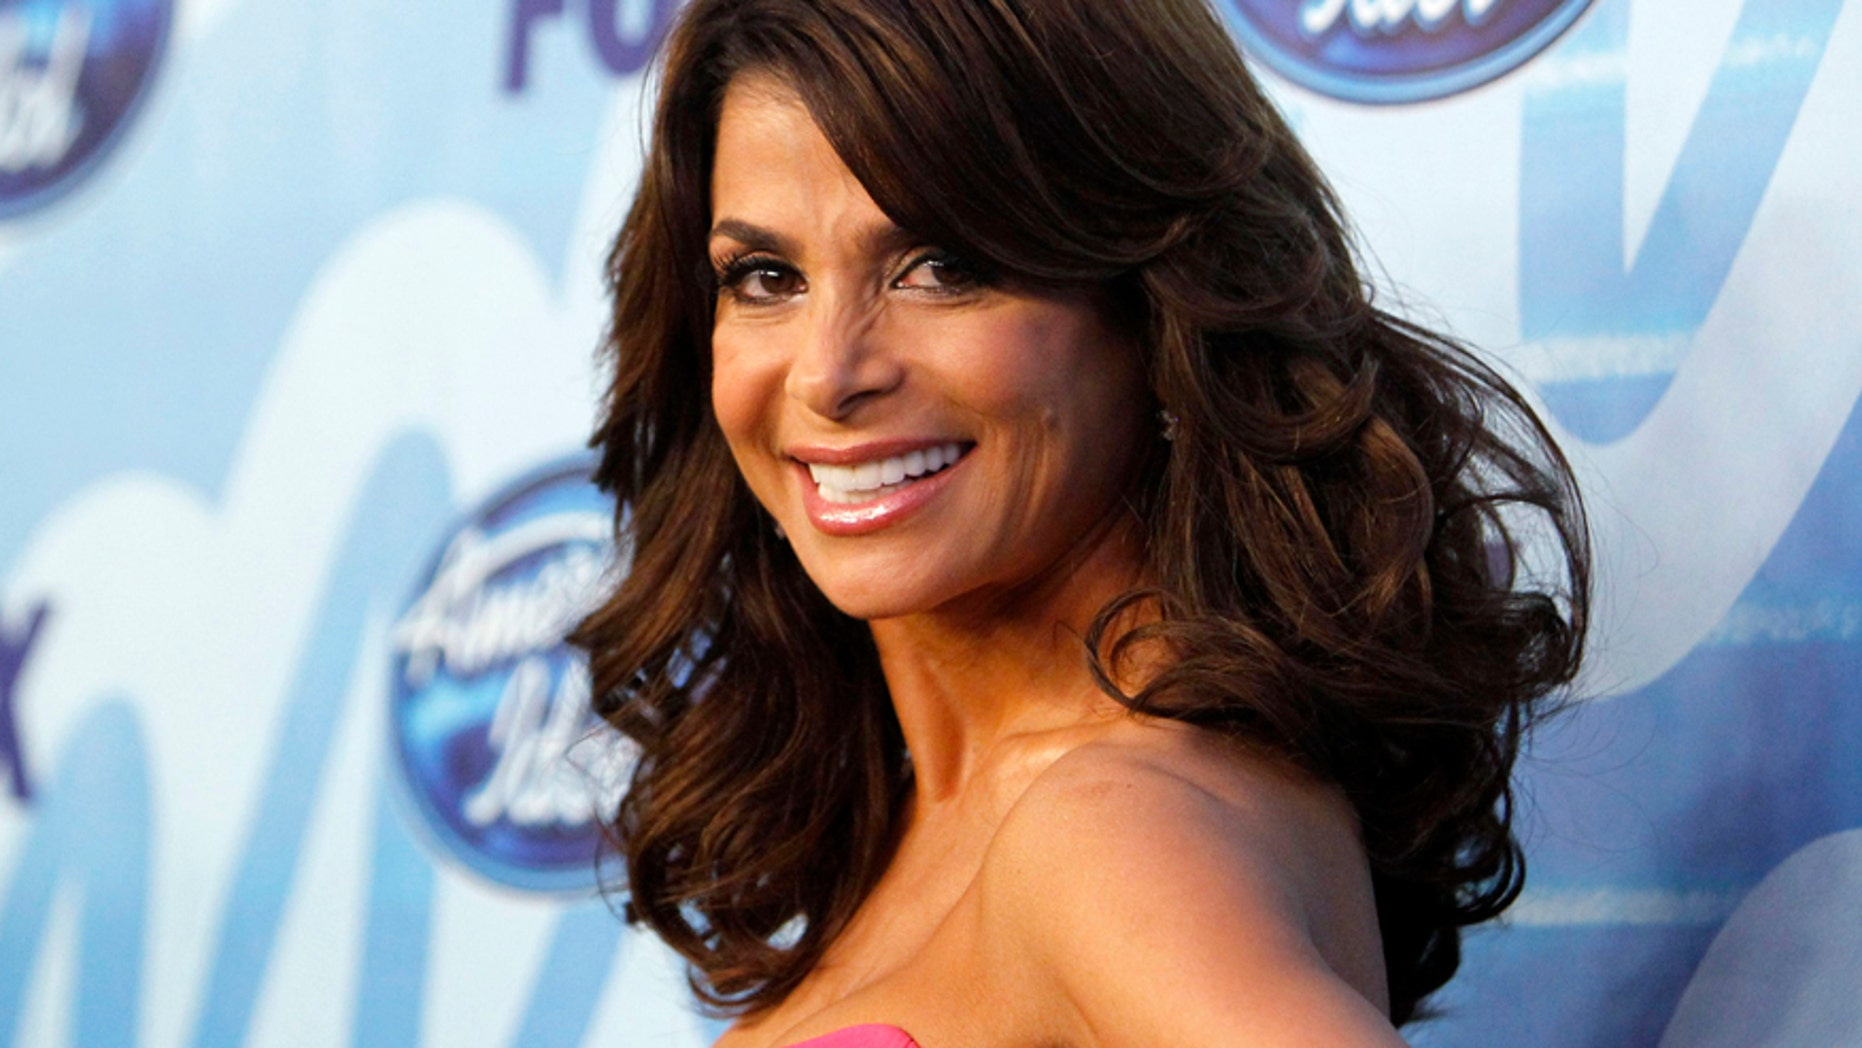 Paula Abdul poses for photographers backstage during the 9th season finale of 'American Idol' in Los Angeles May 26, 2010.